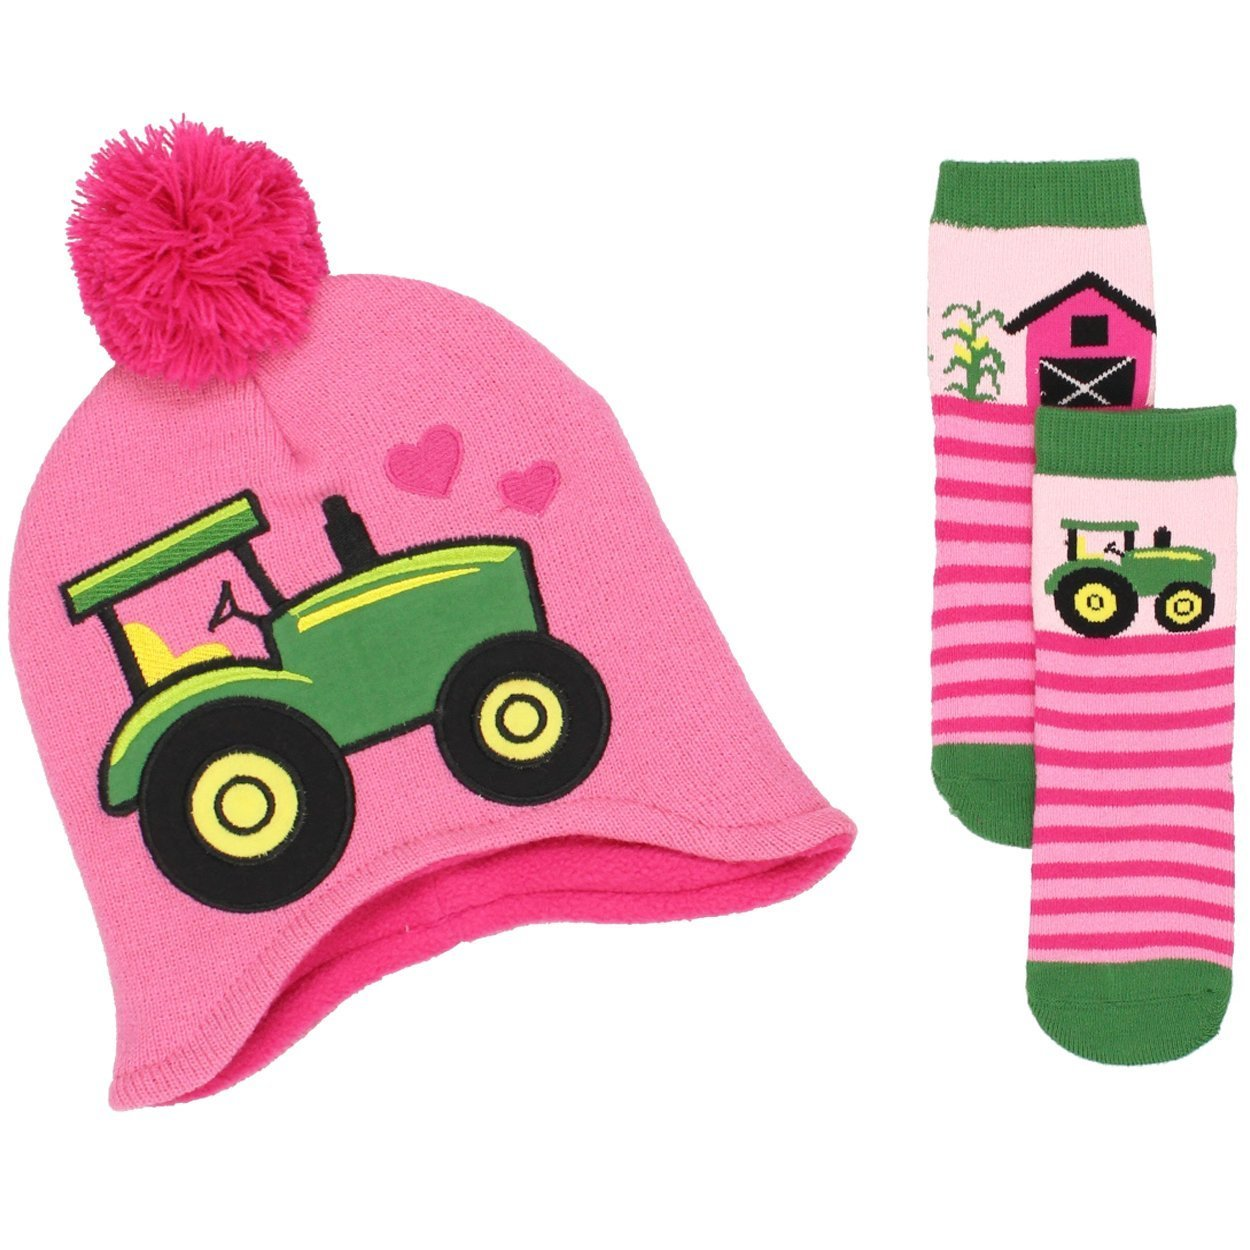 John Deere Girls Beanie Hat and Socks Set (Toddler/Little Kid) Tractor Pink) Yankee Toy Box